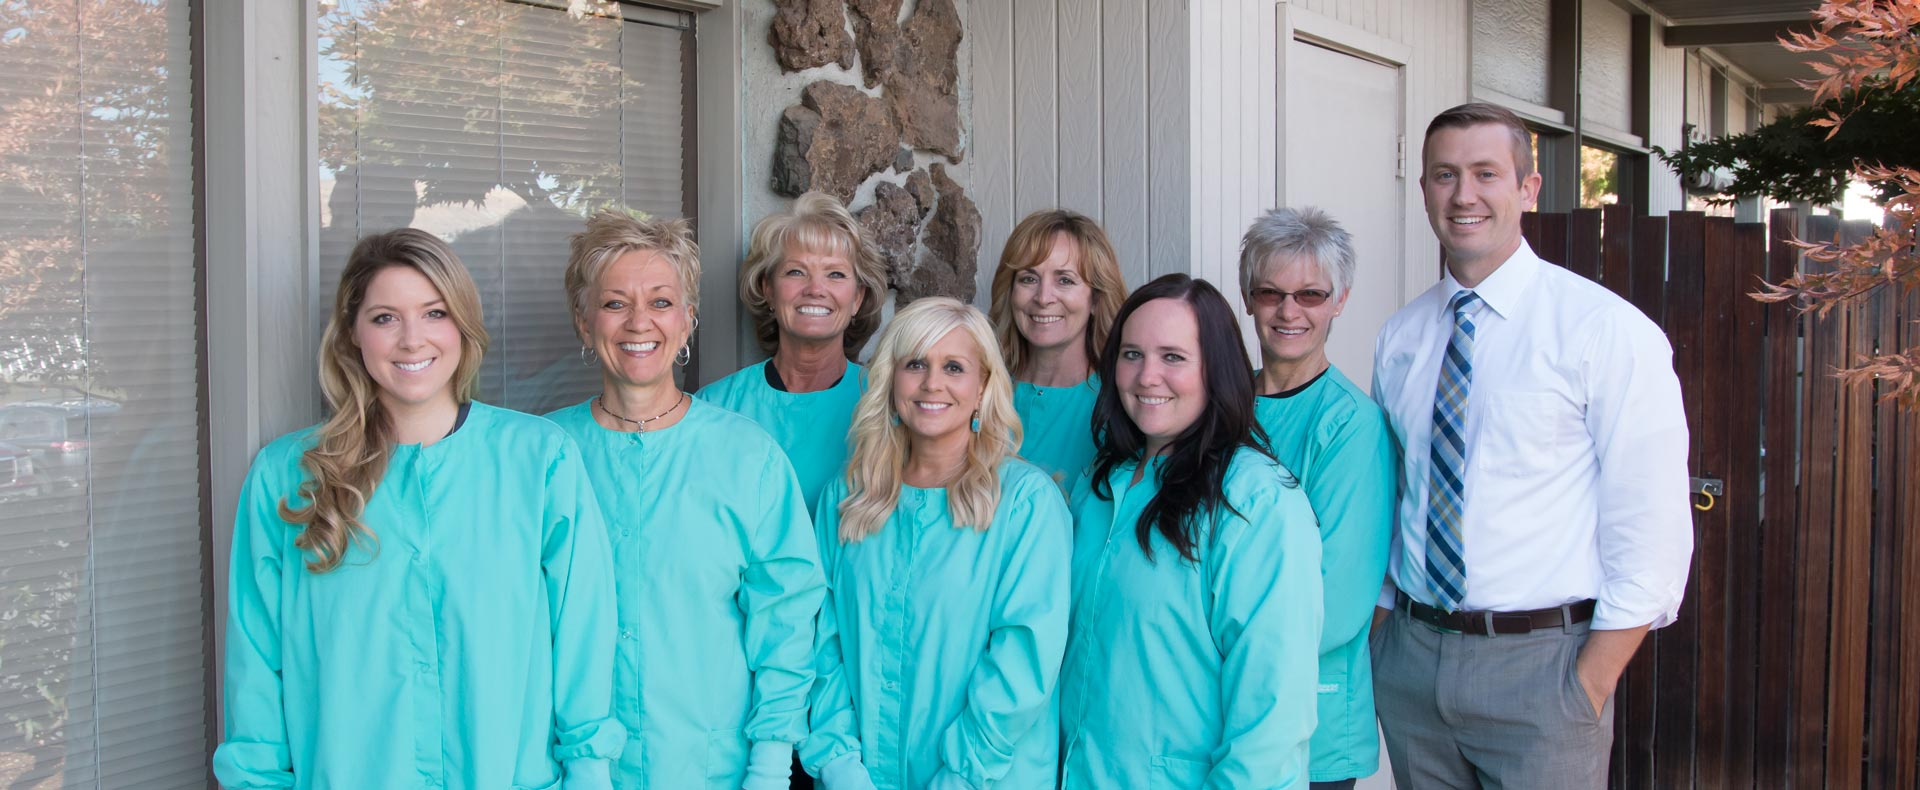 The caring dental team at Family Tree Dentistry in Wenatchee, WA.